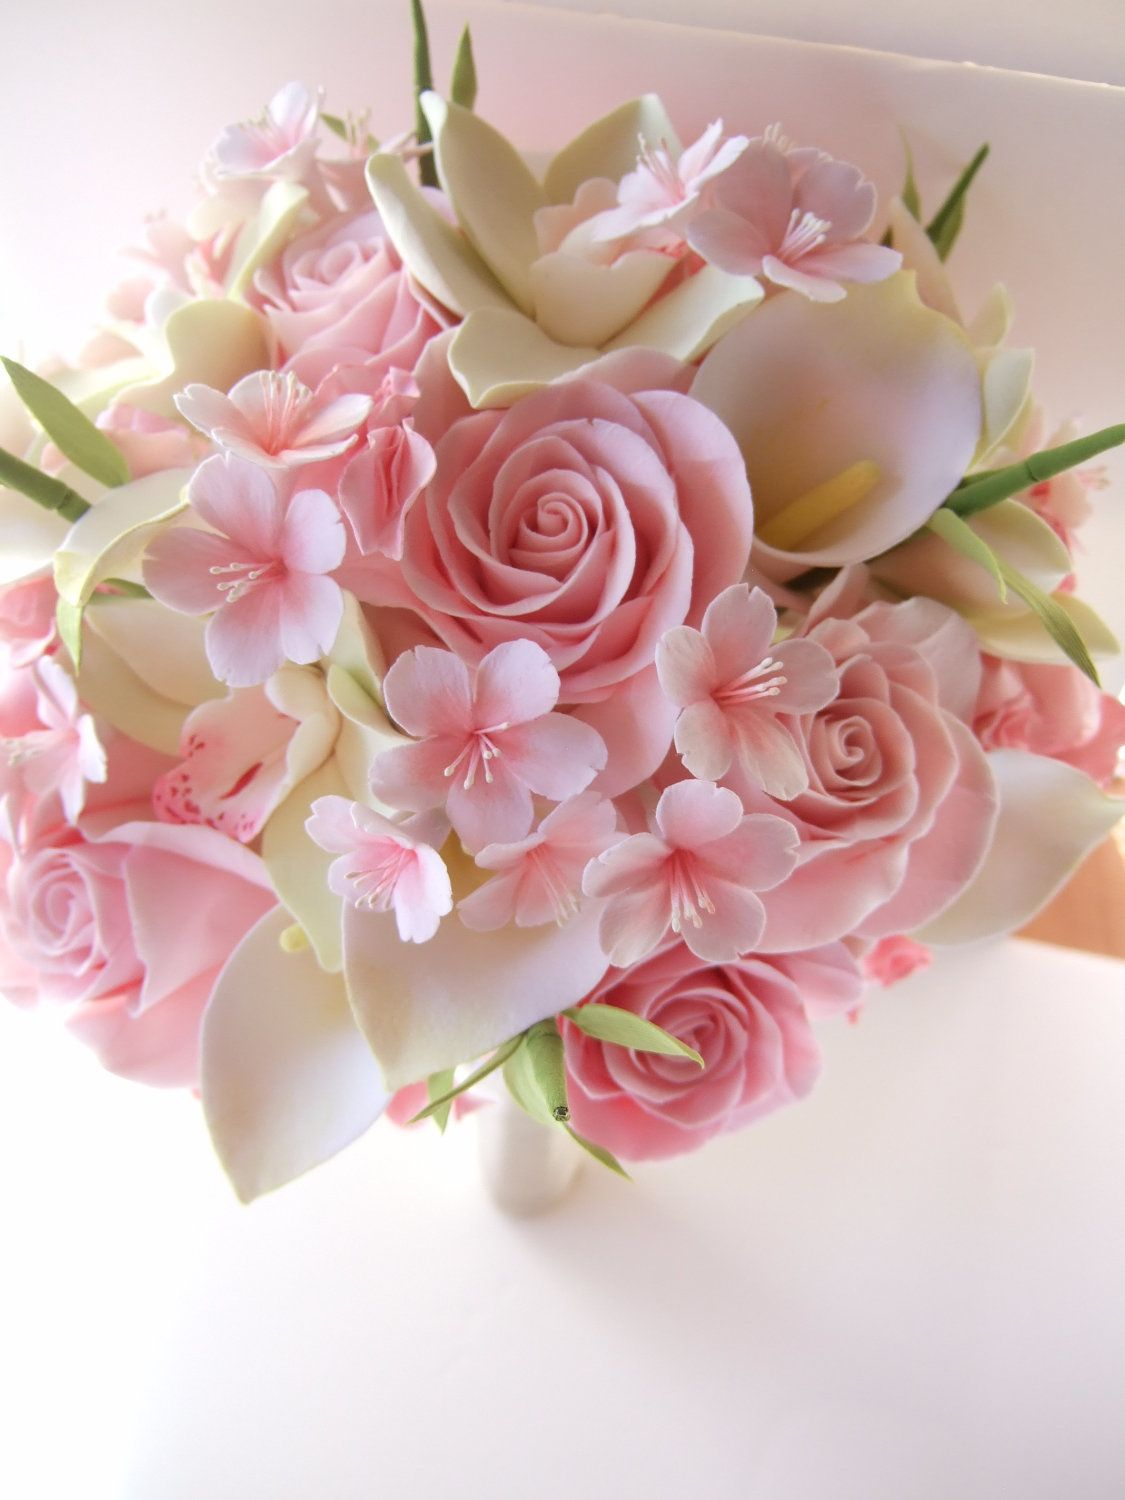 Cherry Blossom Bouquet | Wedding | Pinterest | Cherry blossom ...